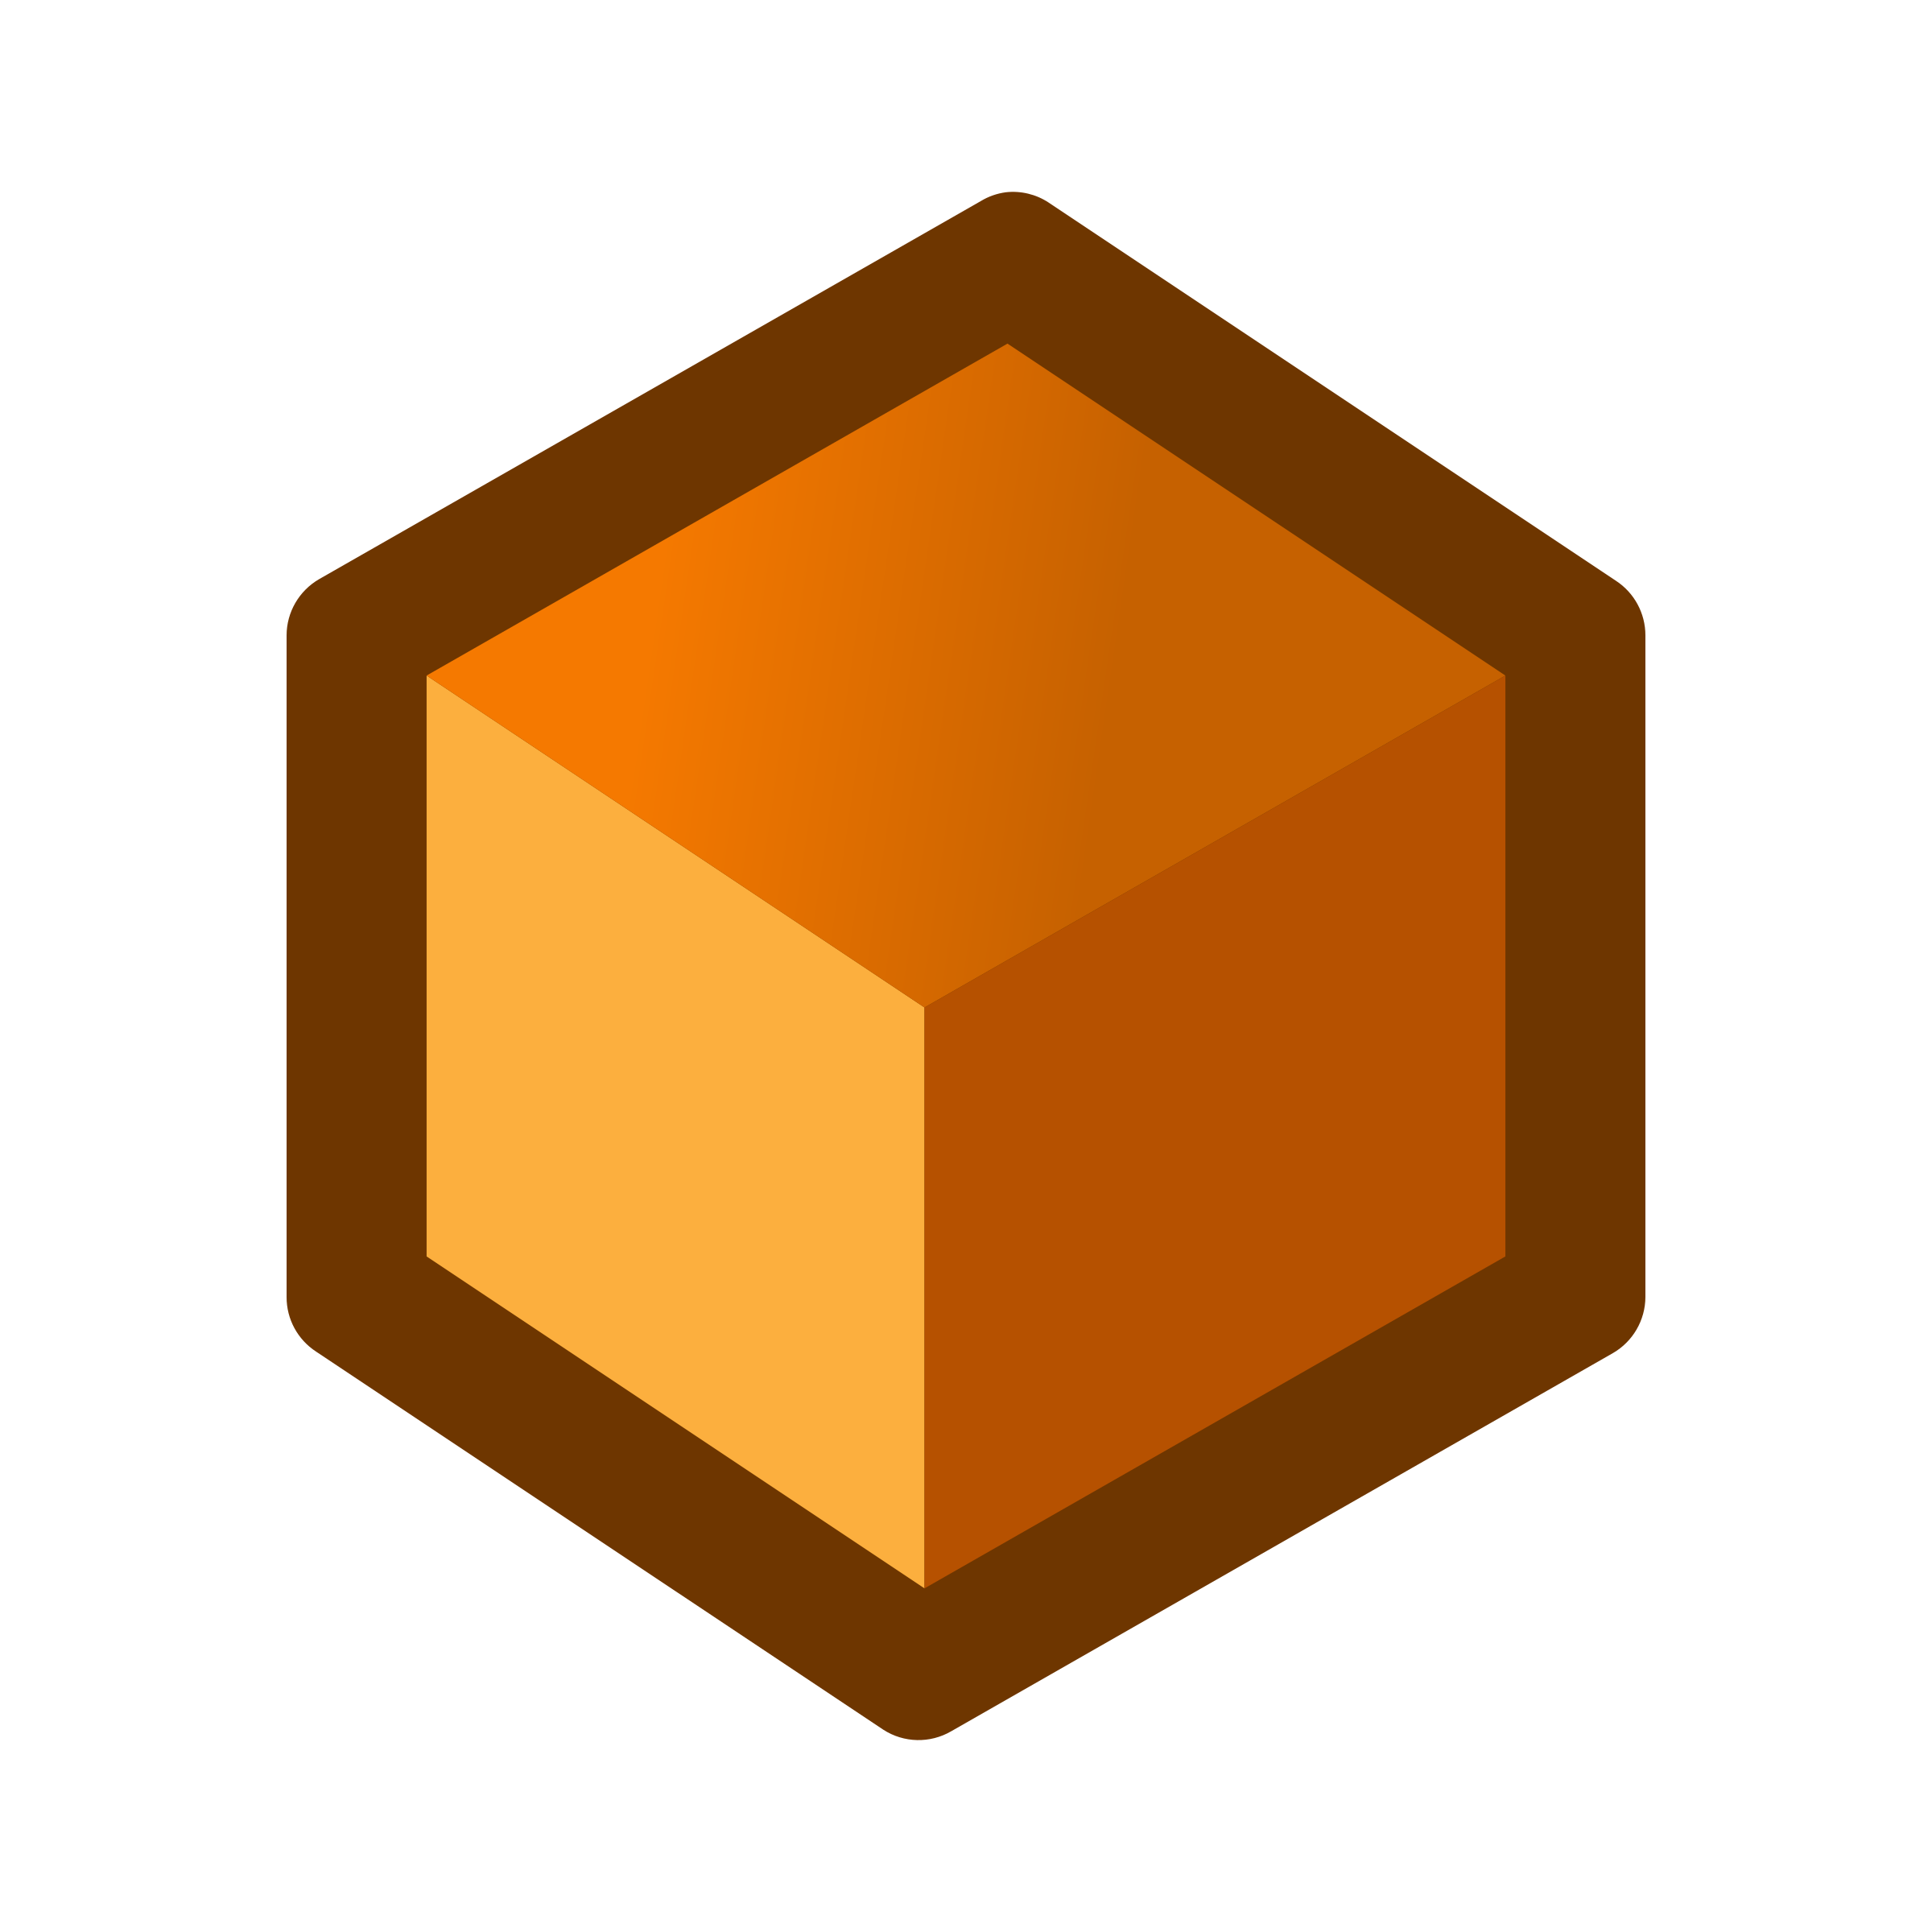 icon_cube_orange by jean_victor_balin